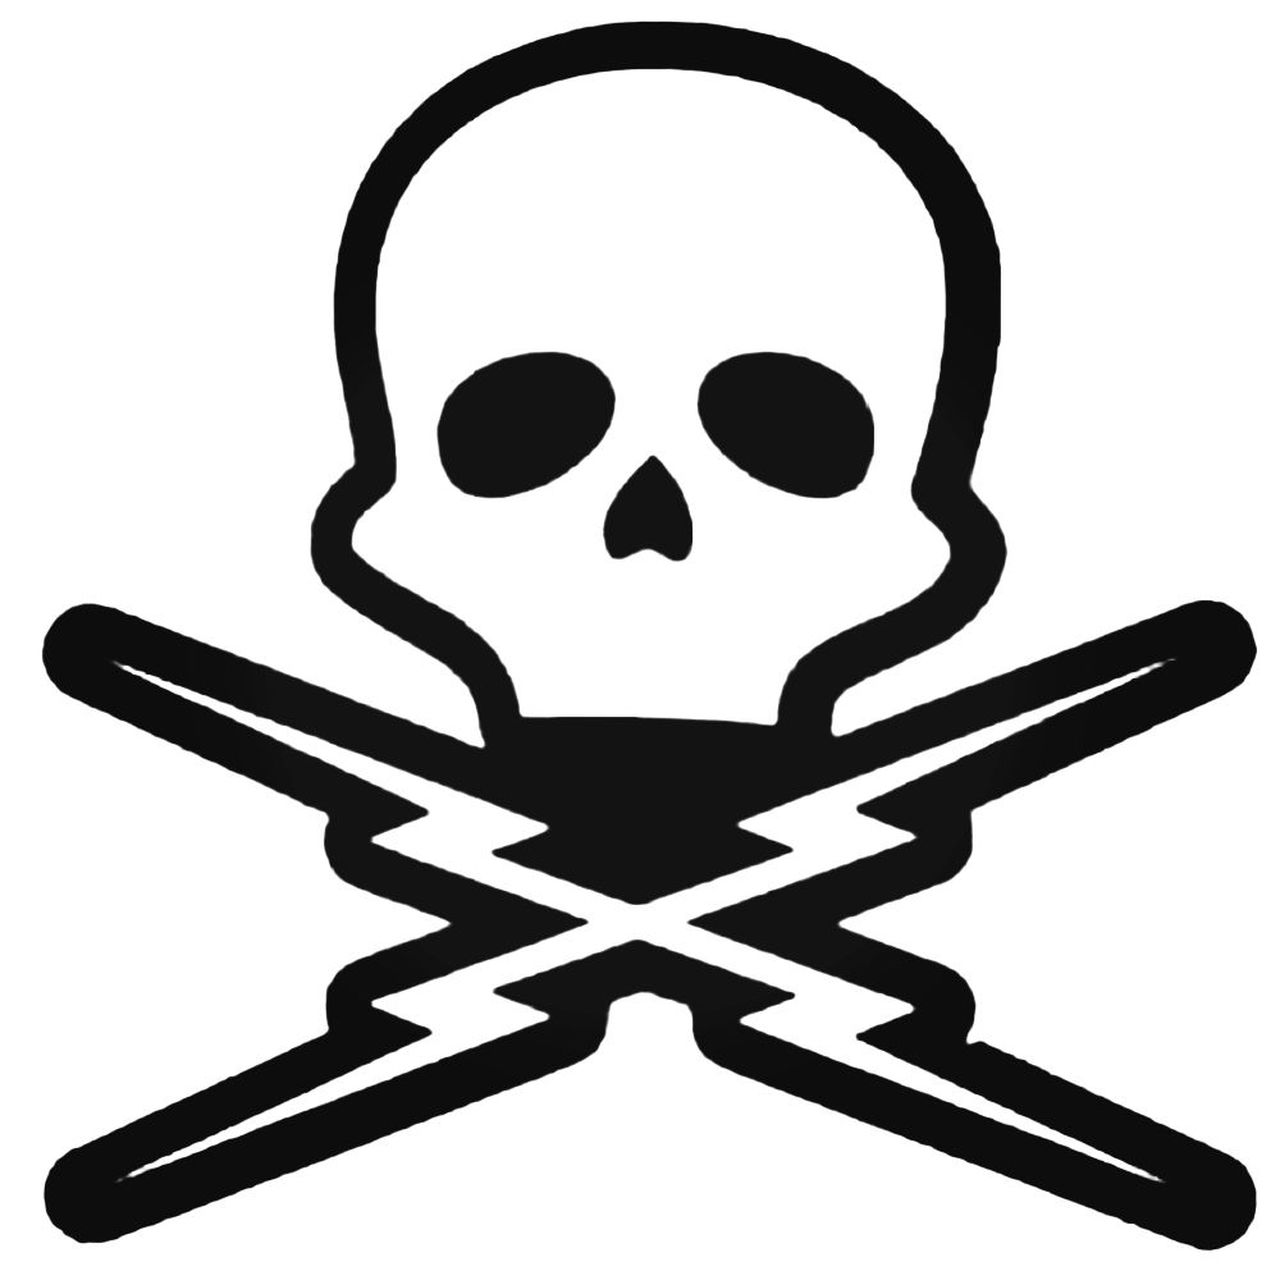 Grindhouse Death Proof Skull Decal Sticker.